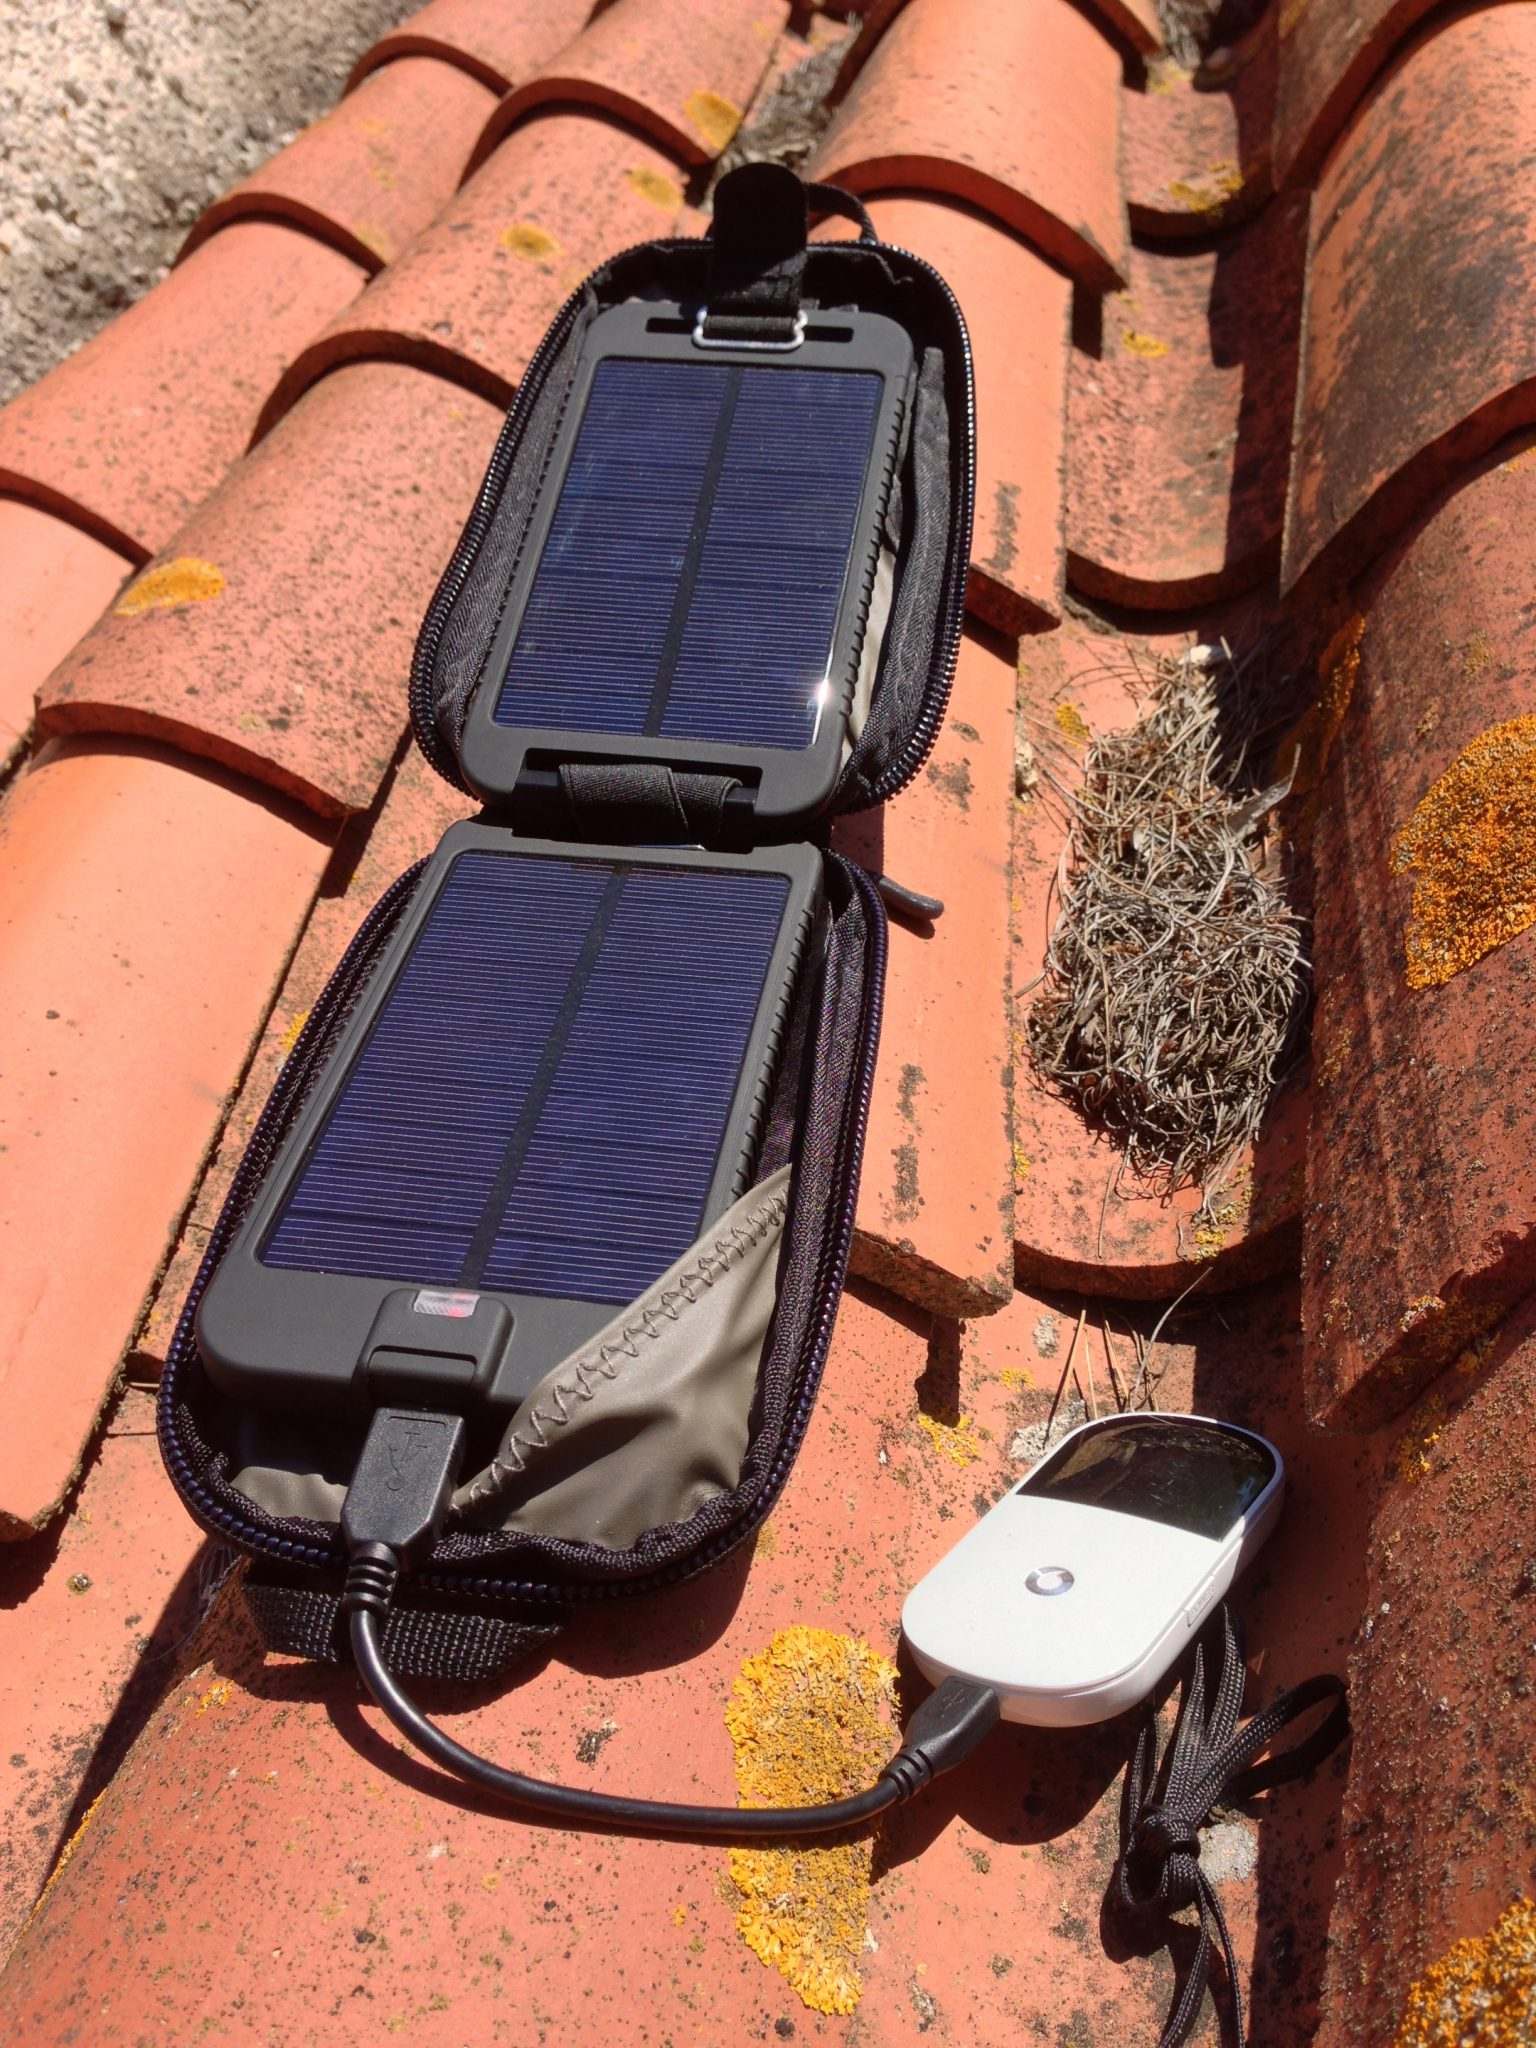 solar powered wifi solution using the solarmonkey adventurer solarmonkey adventurer on roof